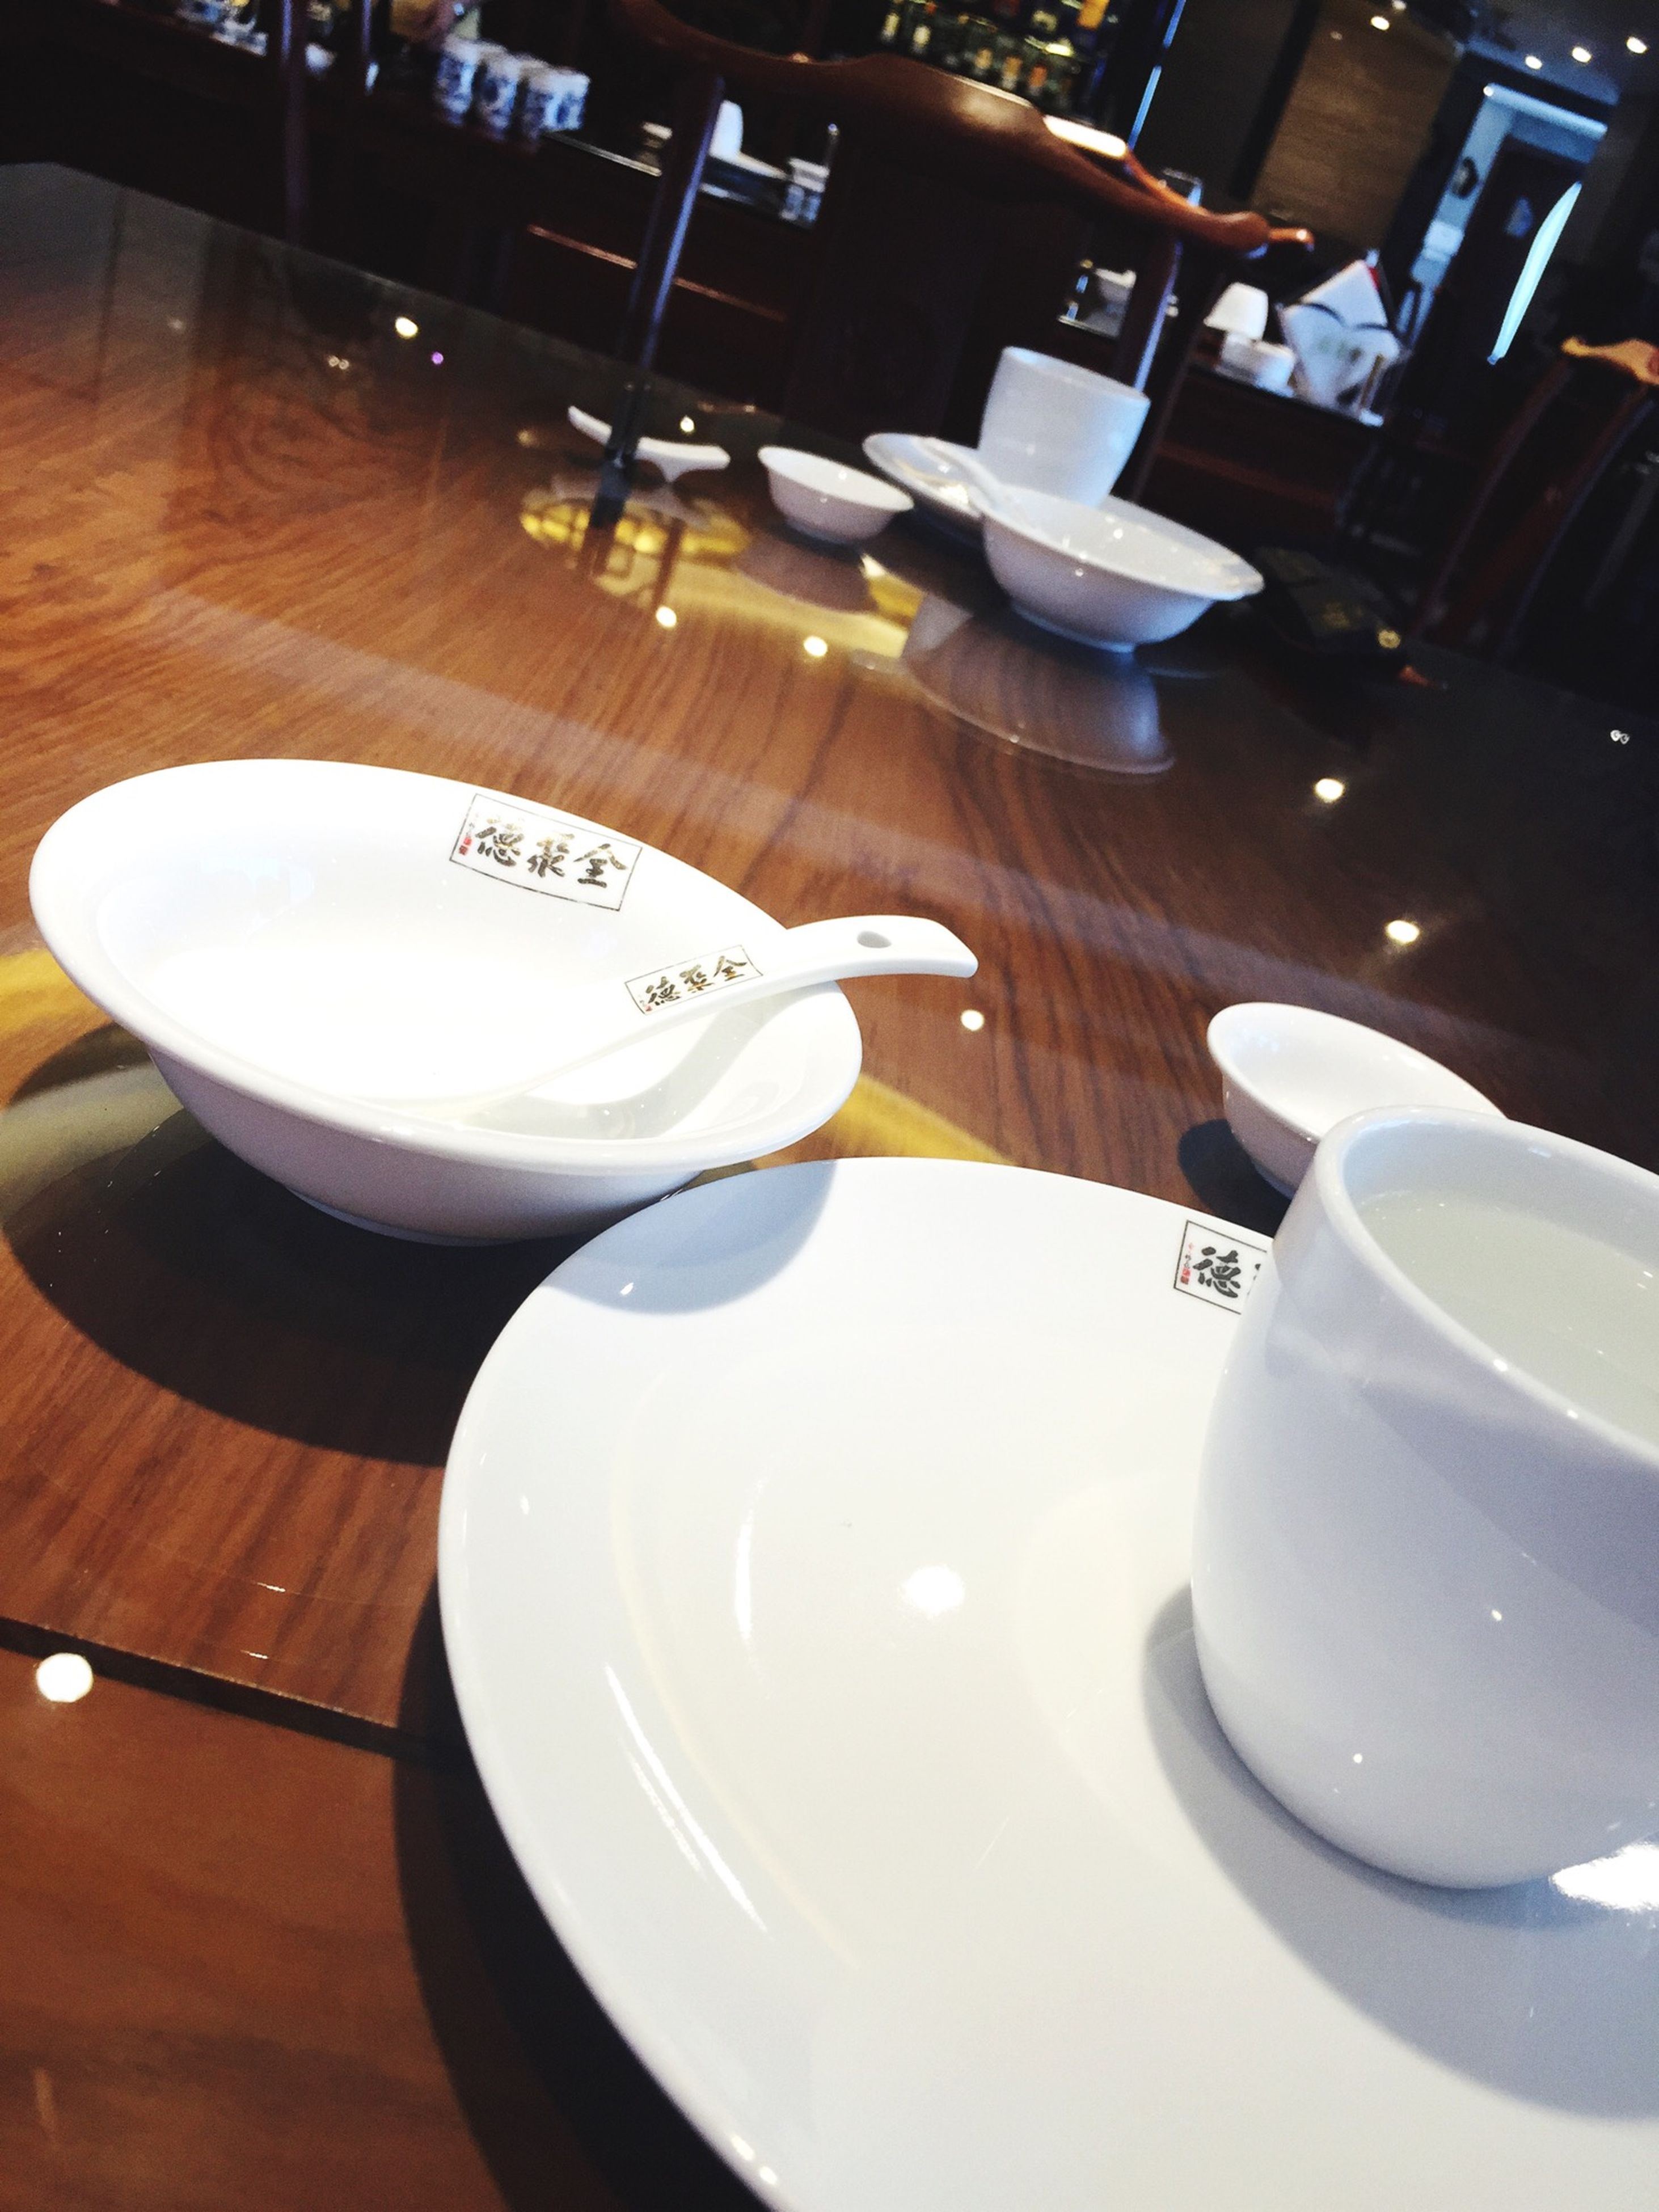 indoors, table, plate, still life, chair, high angle view, spoon, coffee cup, white color, empty, drink, food and drink, absence, restaurant, saucer, no people, fork, cup, refreshment, reflection